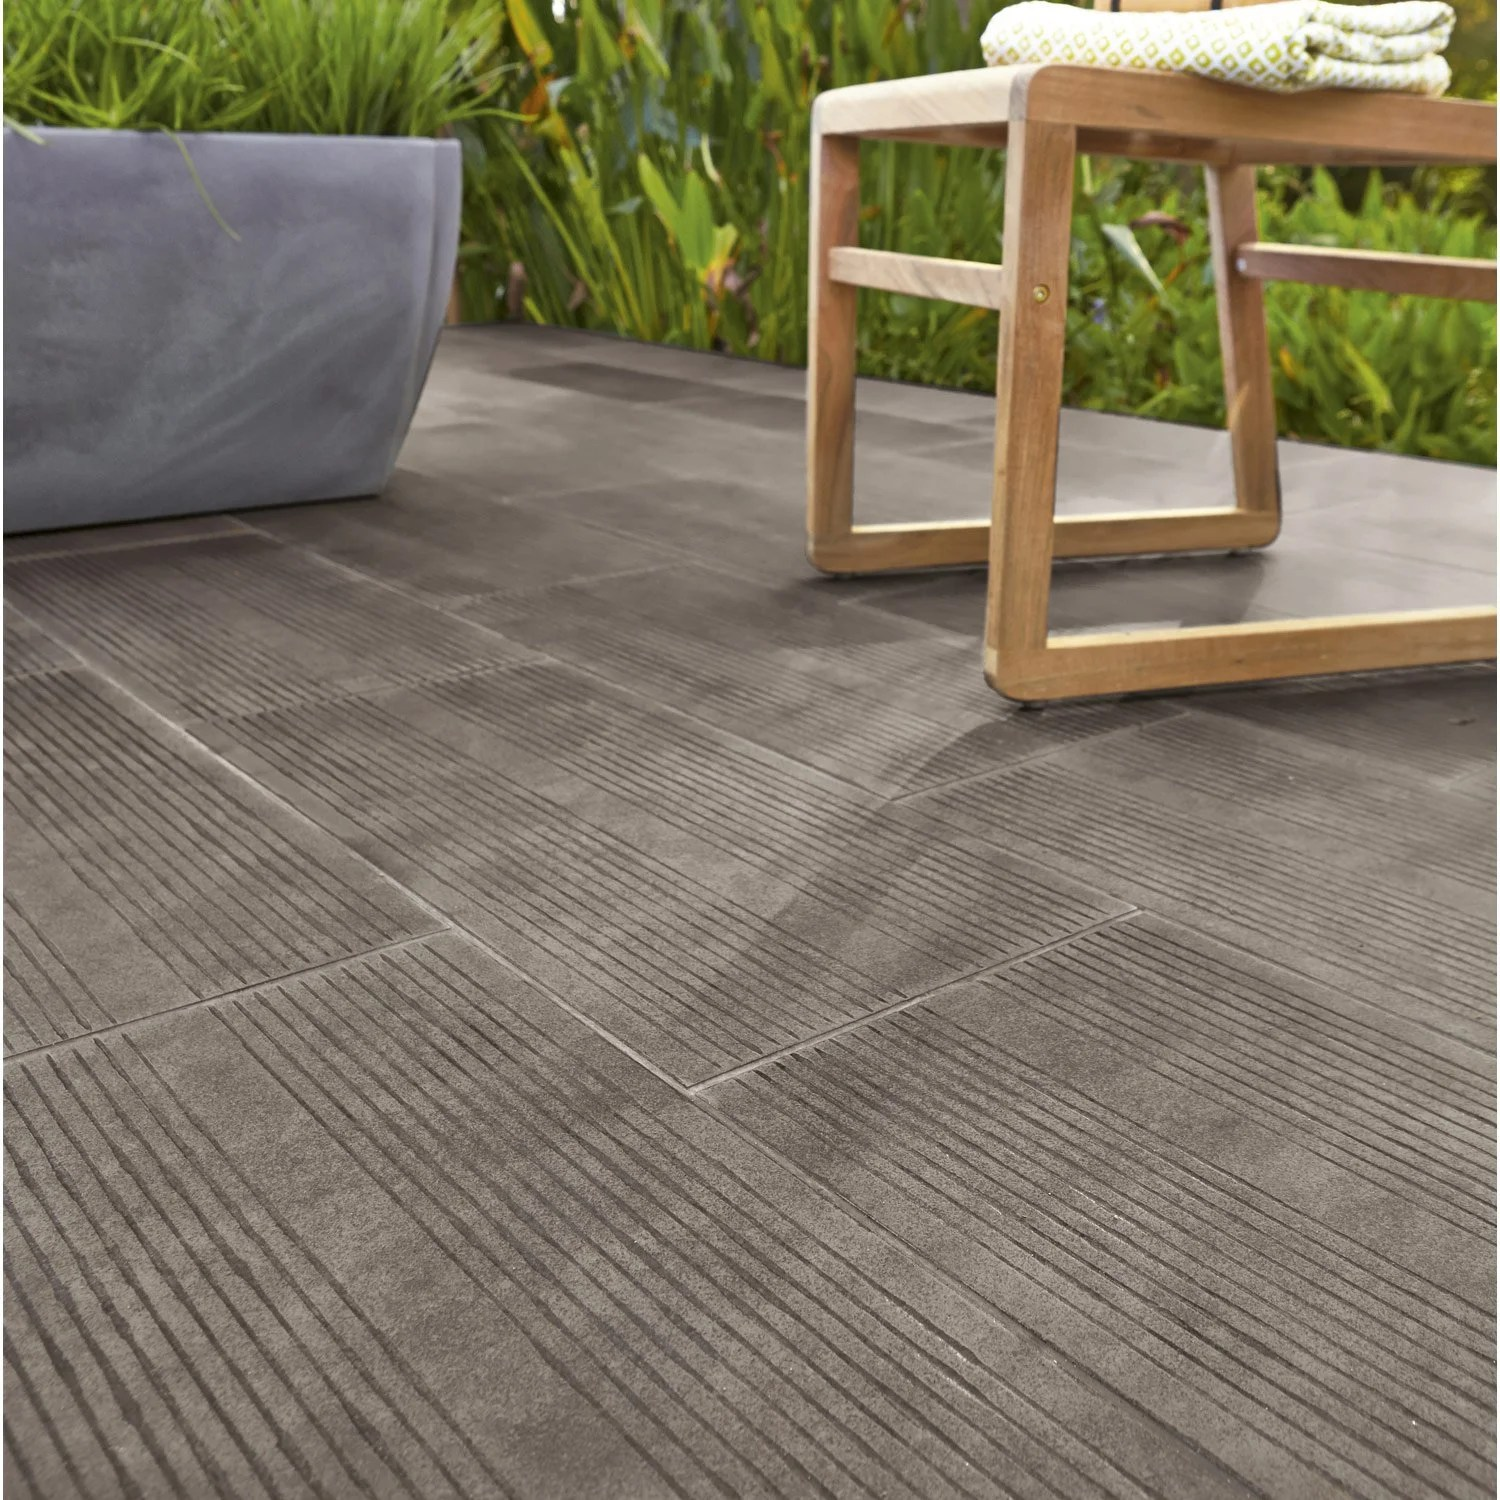 Carrelage Exterieur Gris Anthracite Carrelage Exterieur Anthracite Cheap Carrelage Design